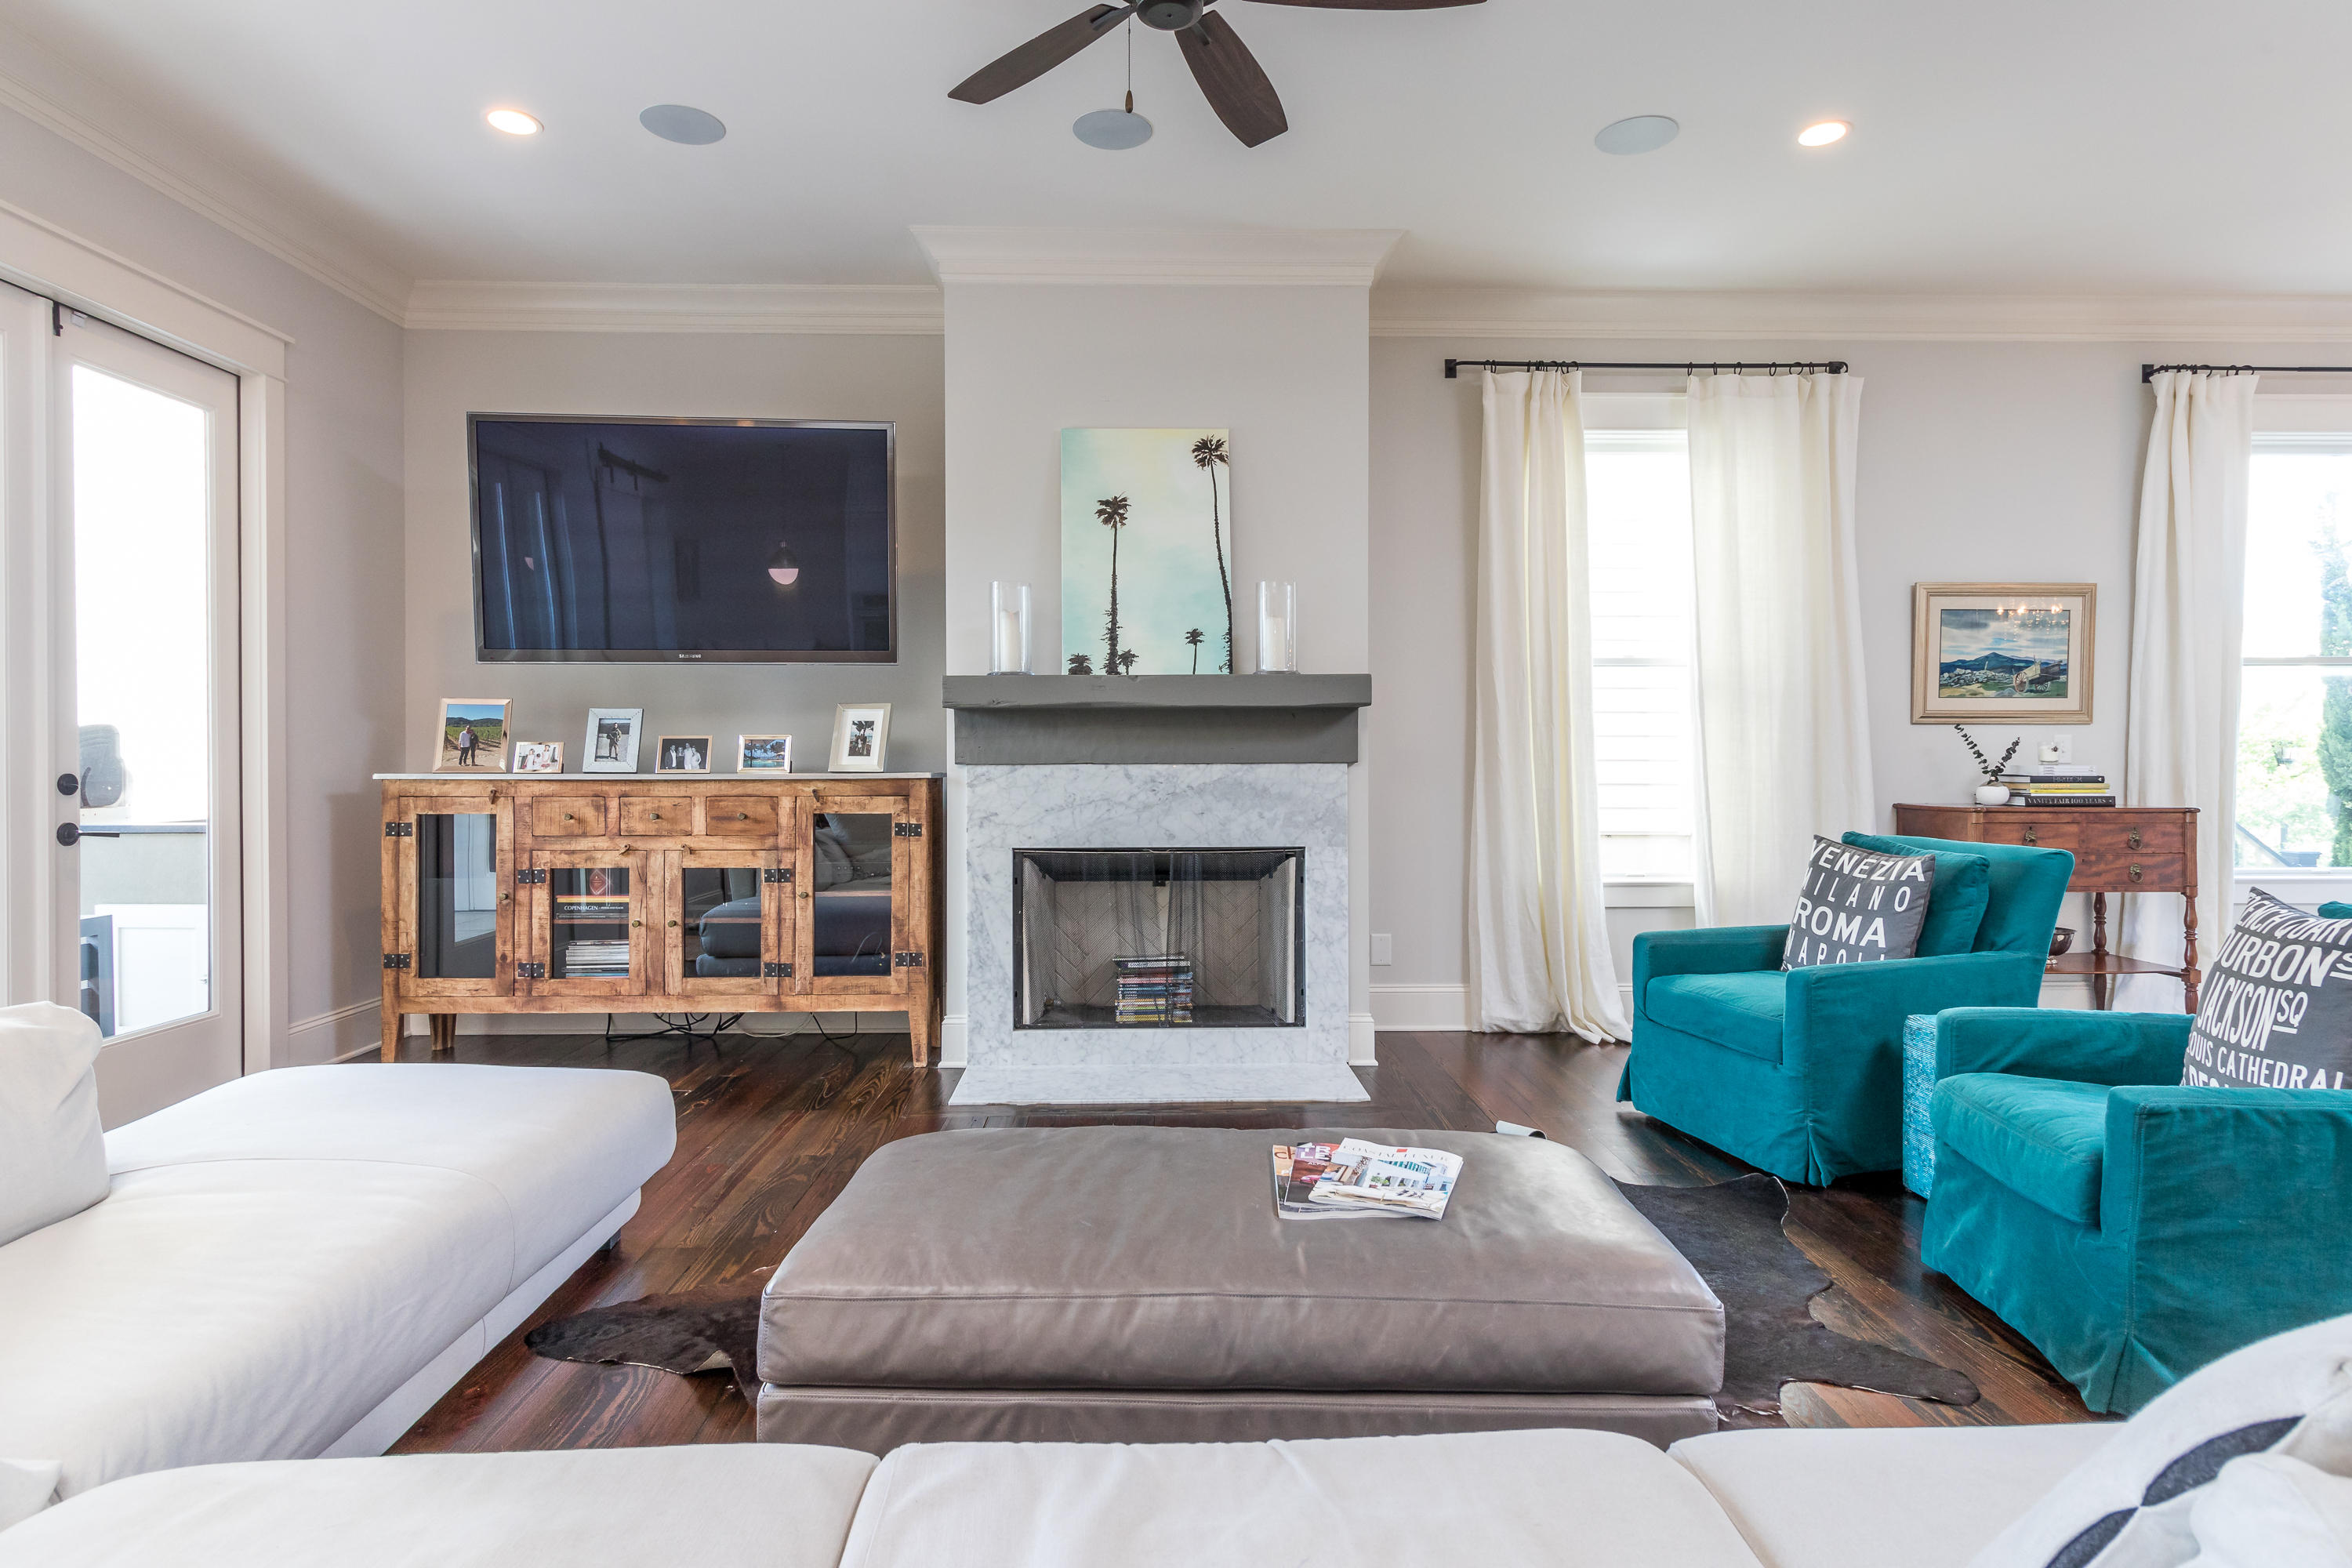 Home for sale 9 Lowndes Pointe Drive, Wagener Terrace, Downtown Charleston, SC